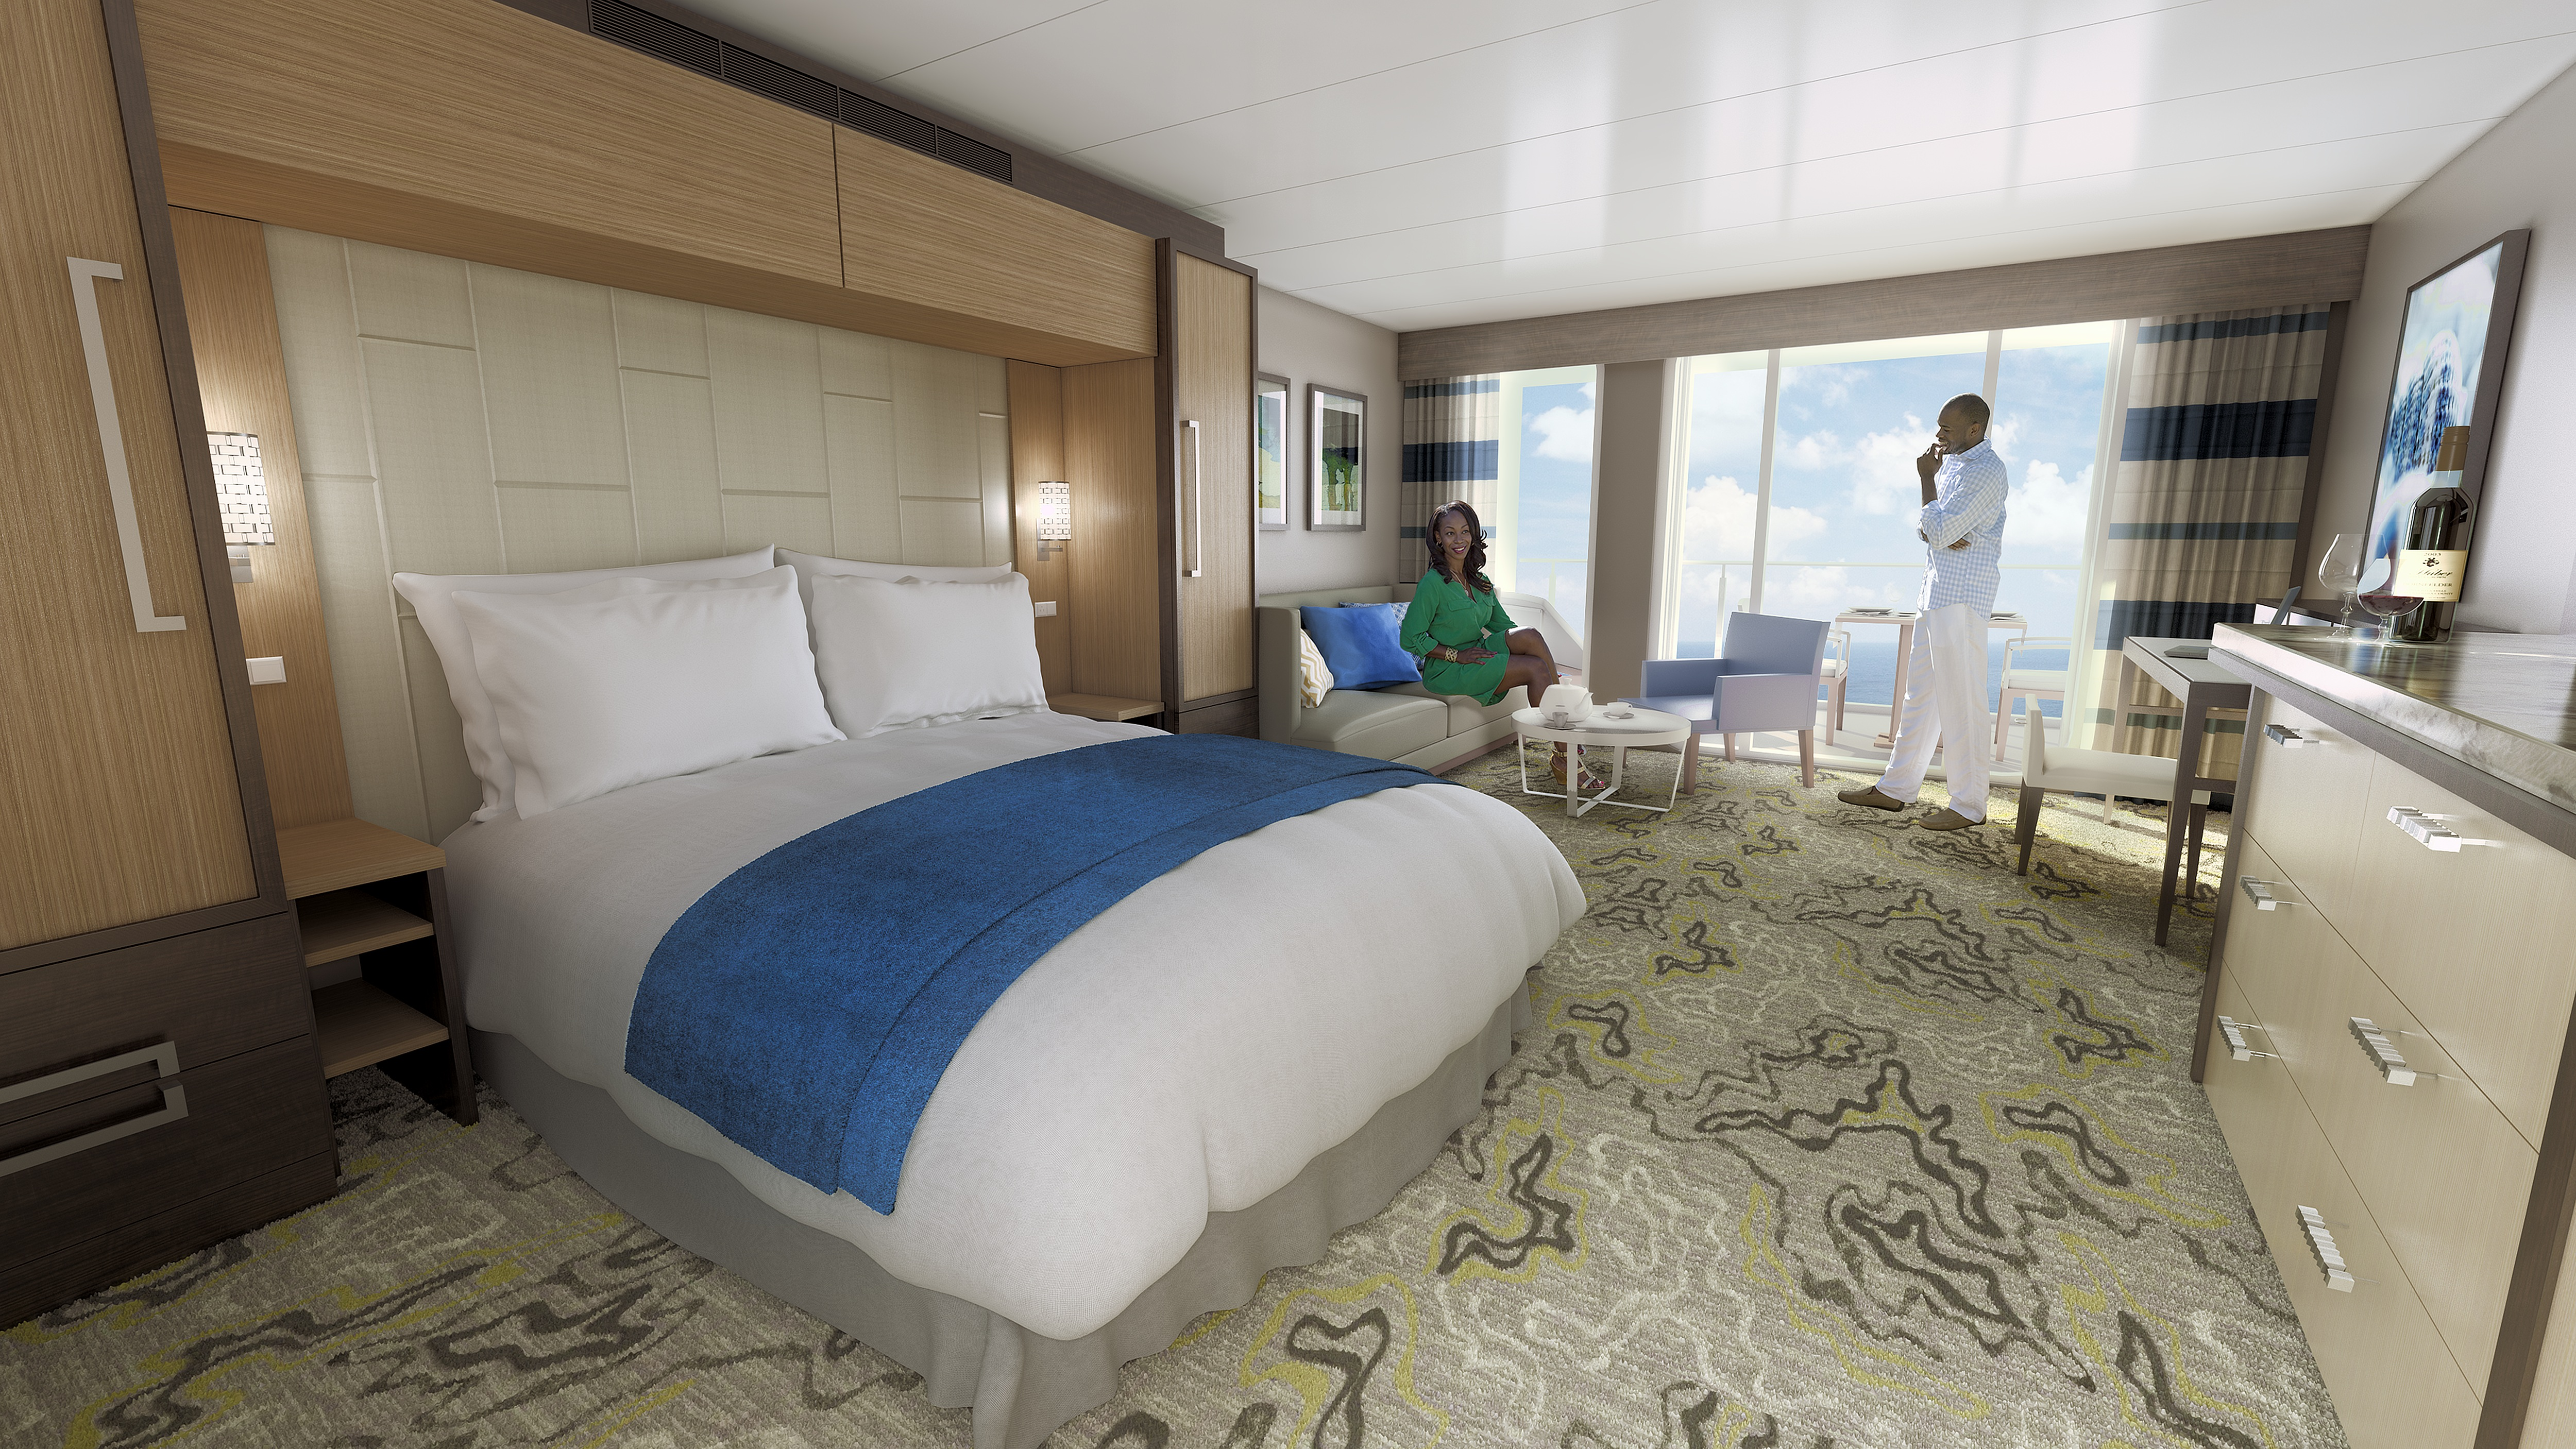 Royal Caribbean International Quantum of the Seas Accommodation Junior Suite 5K.jpg